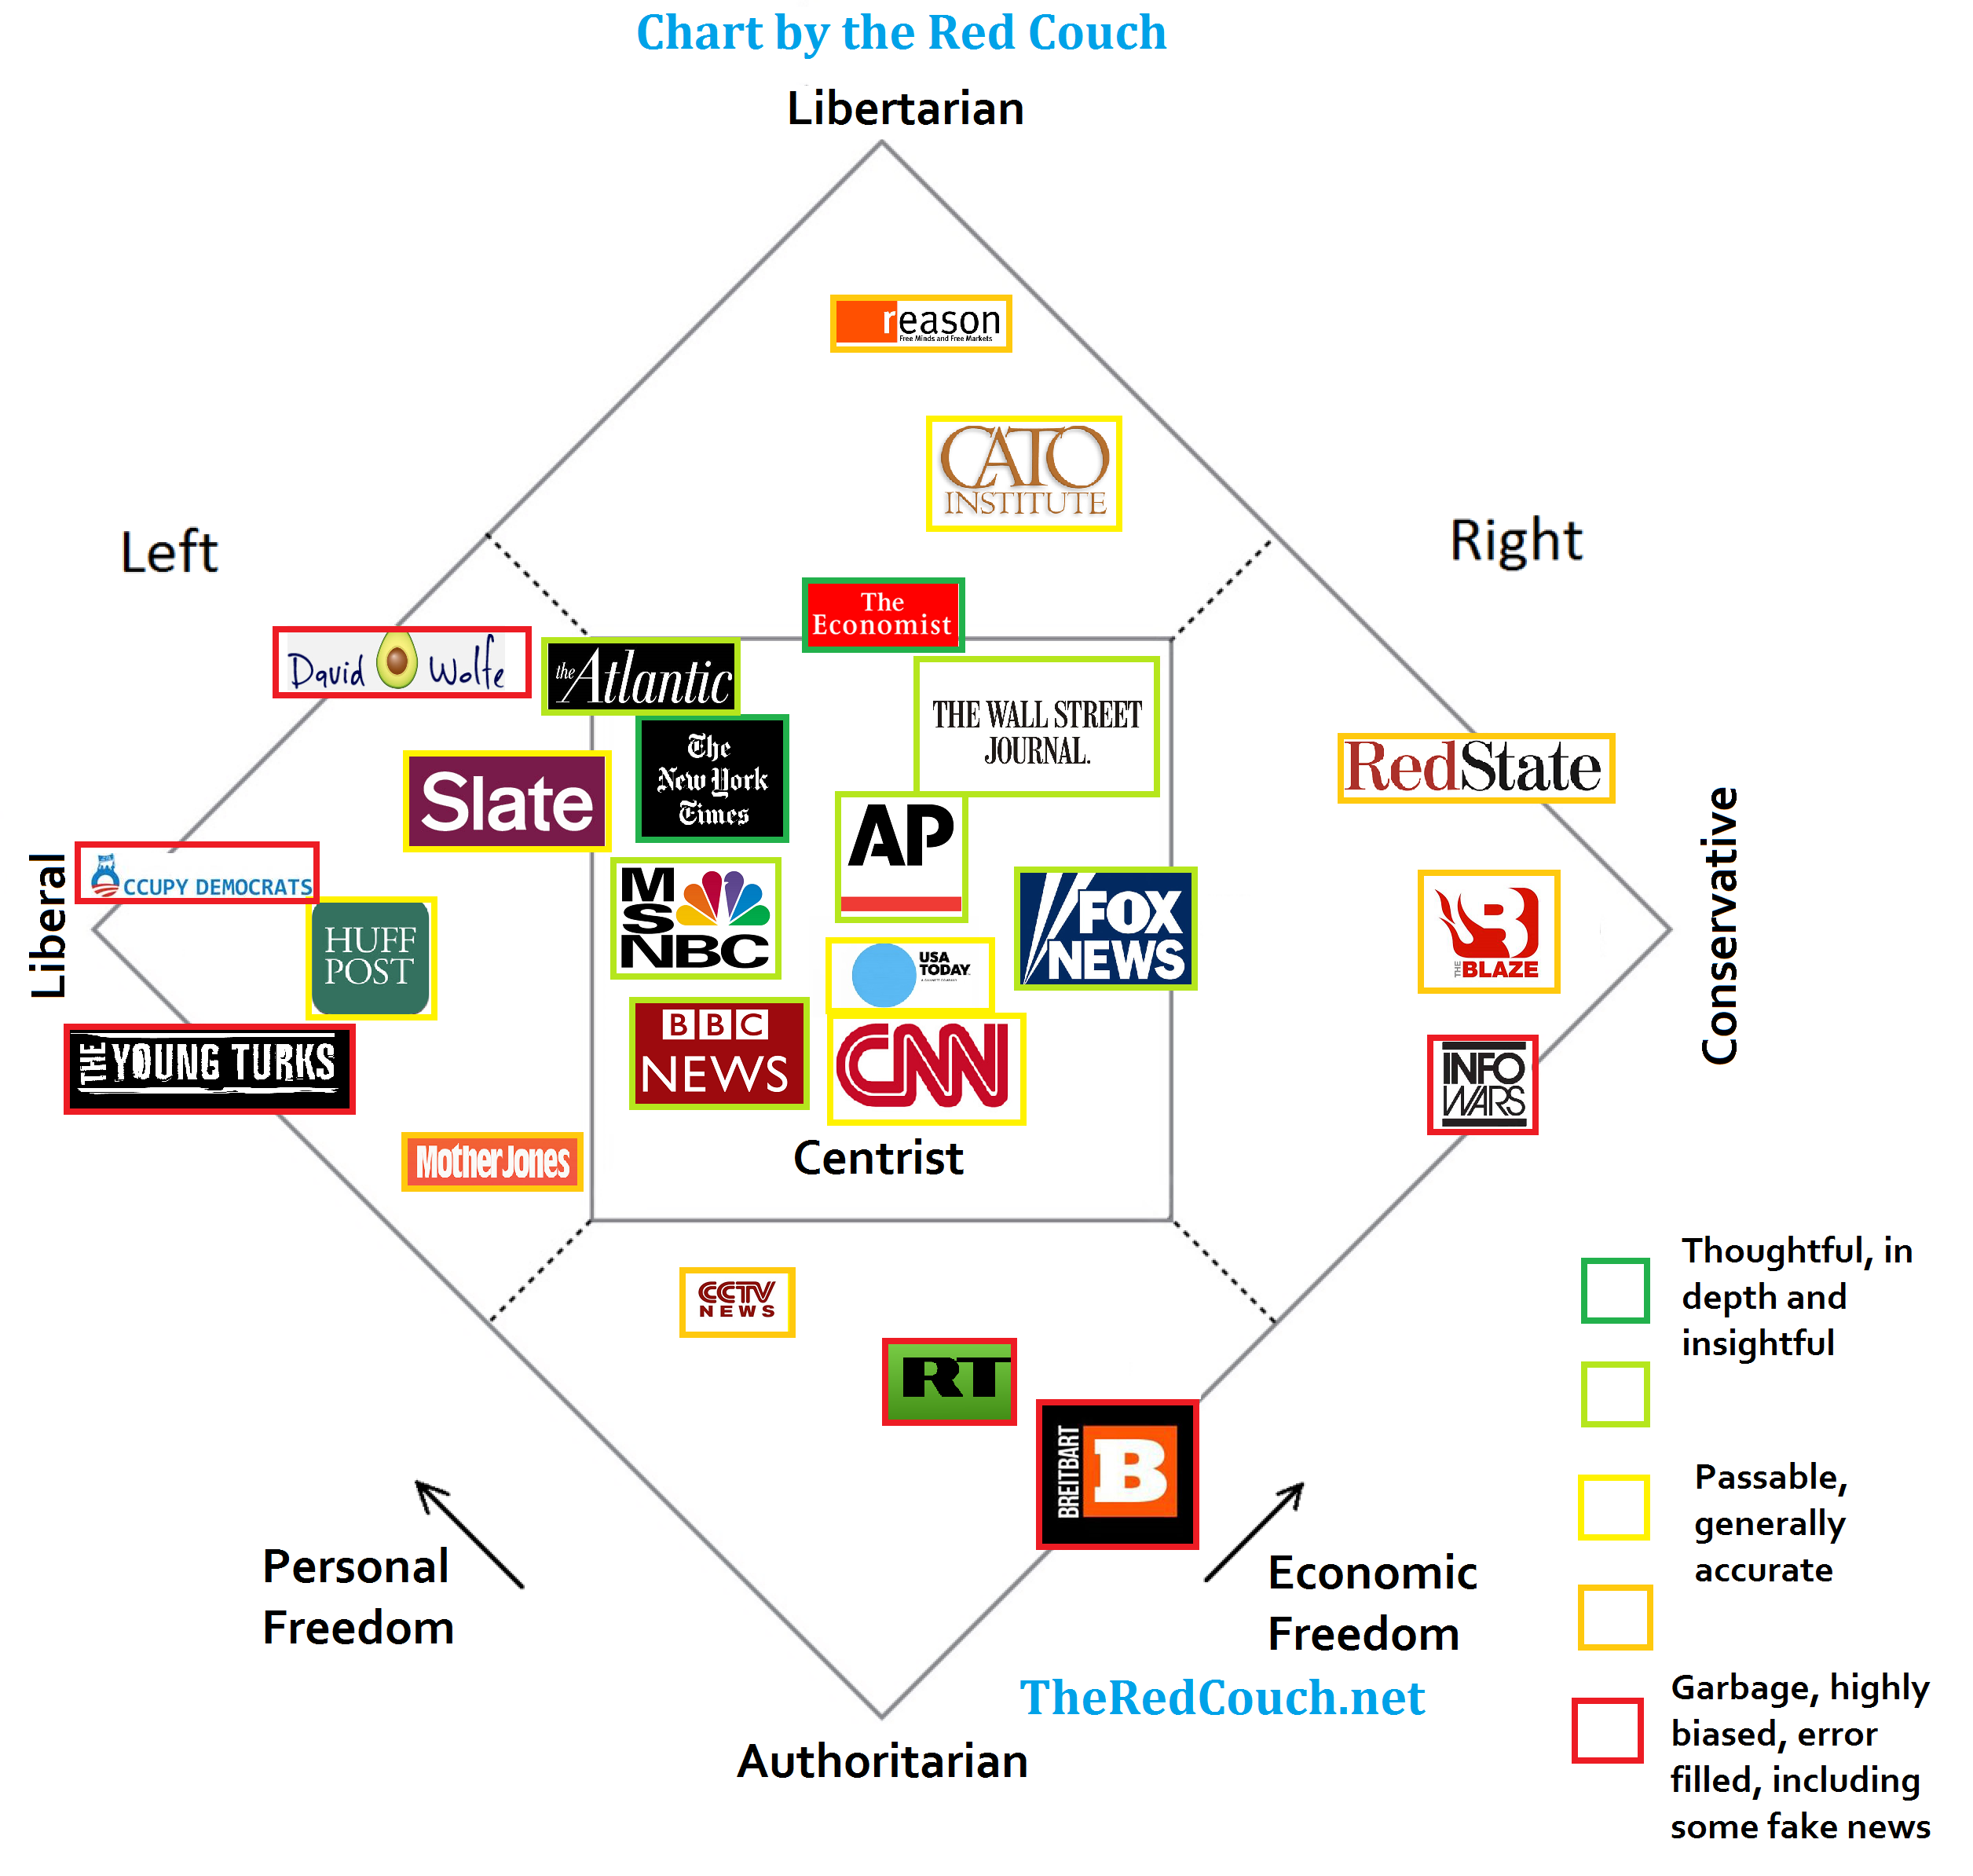 Media Bias Chart With More Than One Political Dimension ...